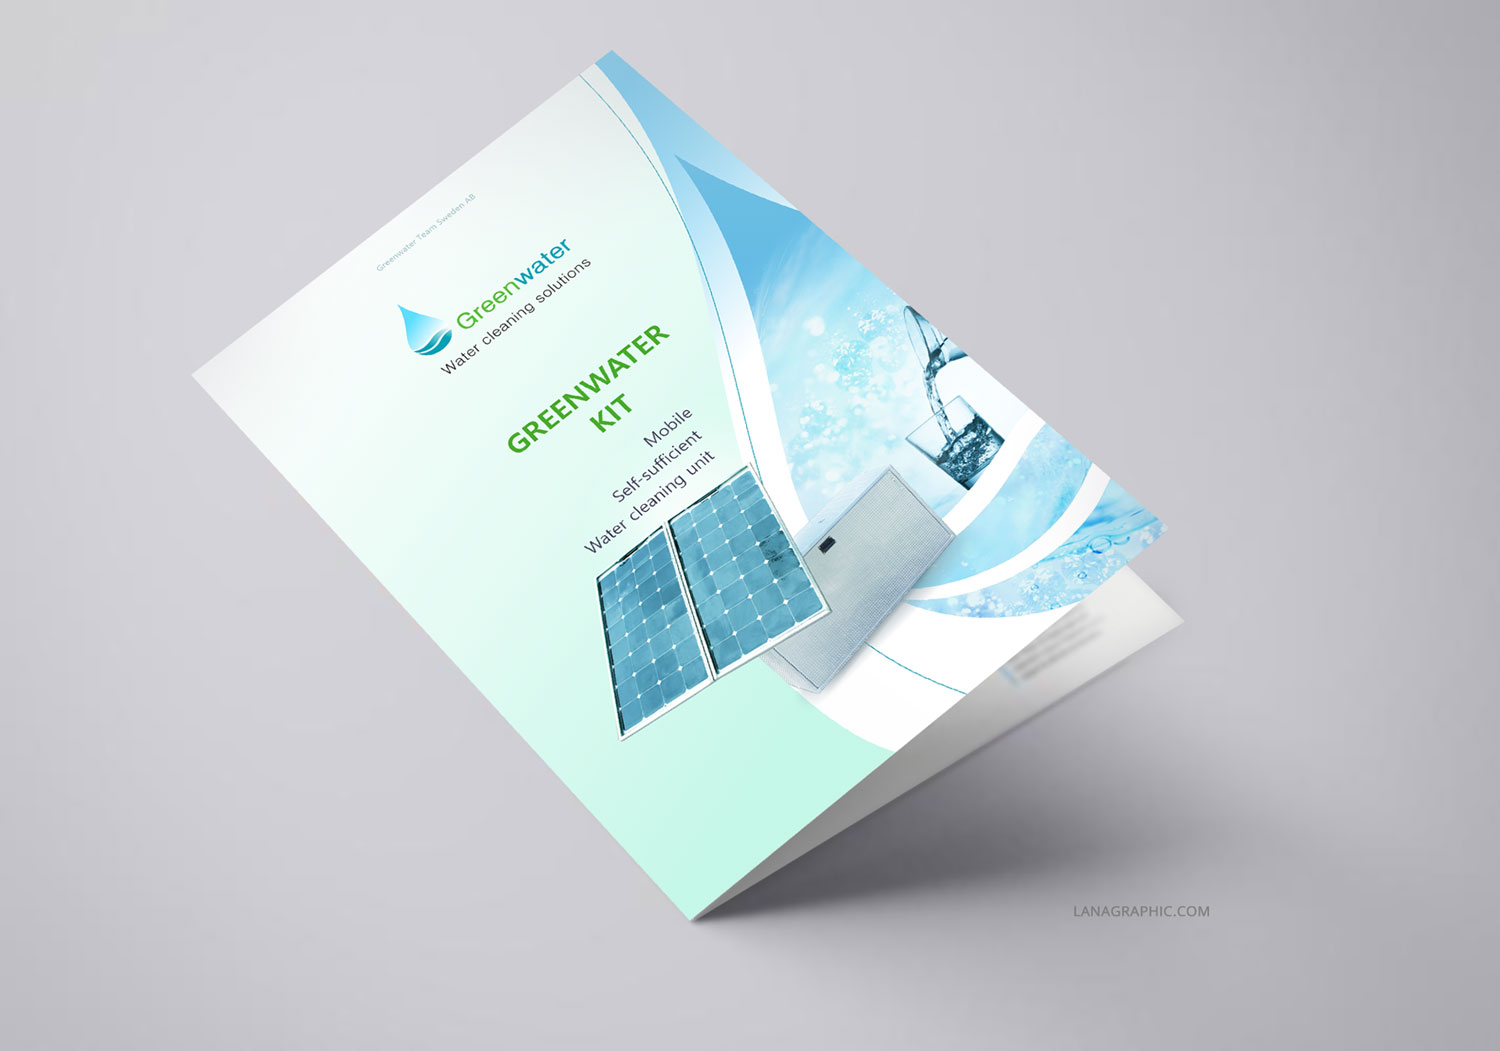 Brochure-Greenwater-Kit-by-Lanagraphic